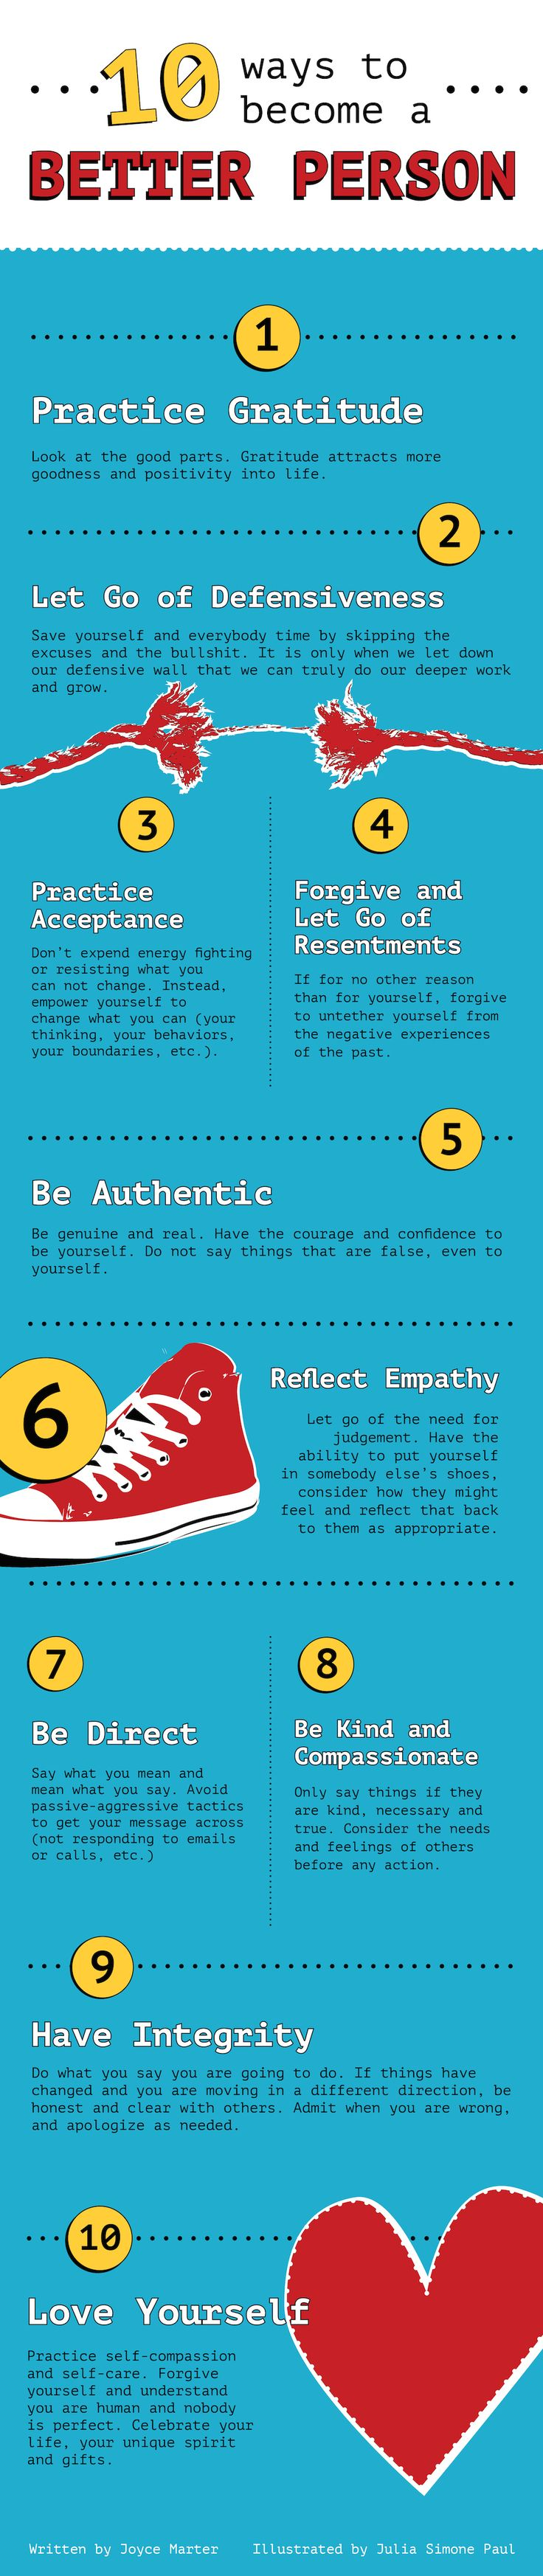 How to be A Better Person #Infograph http://www.huffingtonpost.com/joyce-marter-/10-ways-to-evolve-and-be-_b_4495114.html